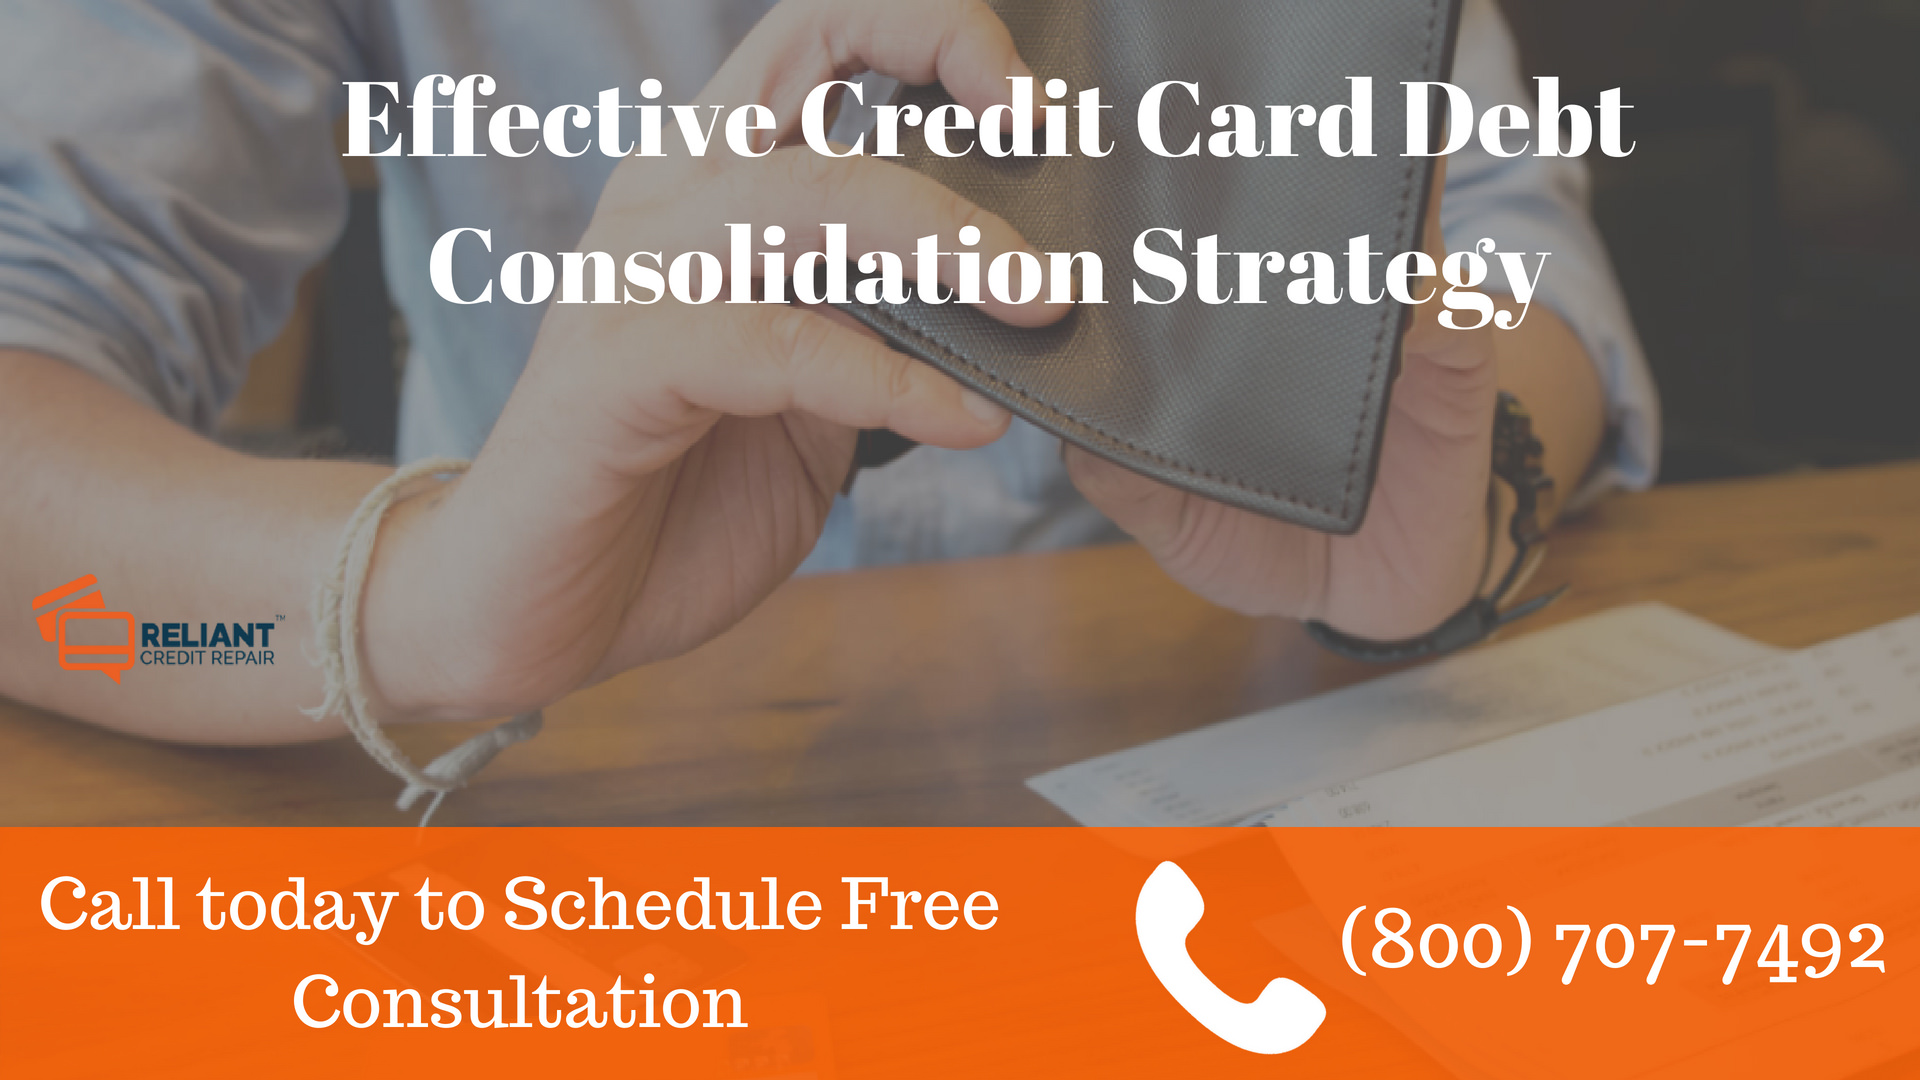 Effective Credit Card Debt Consolidation Strategy